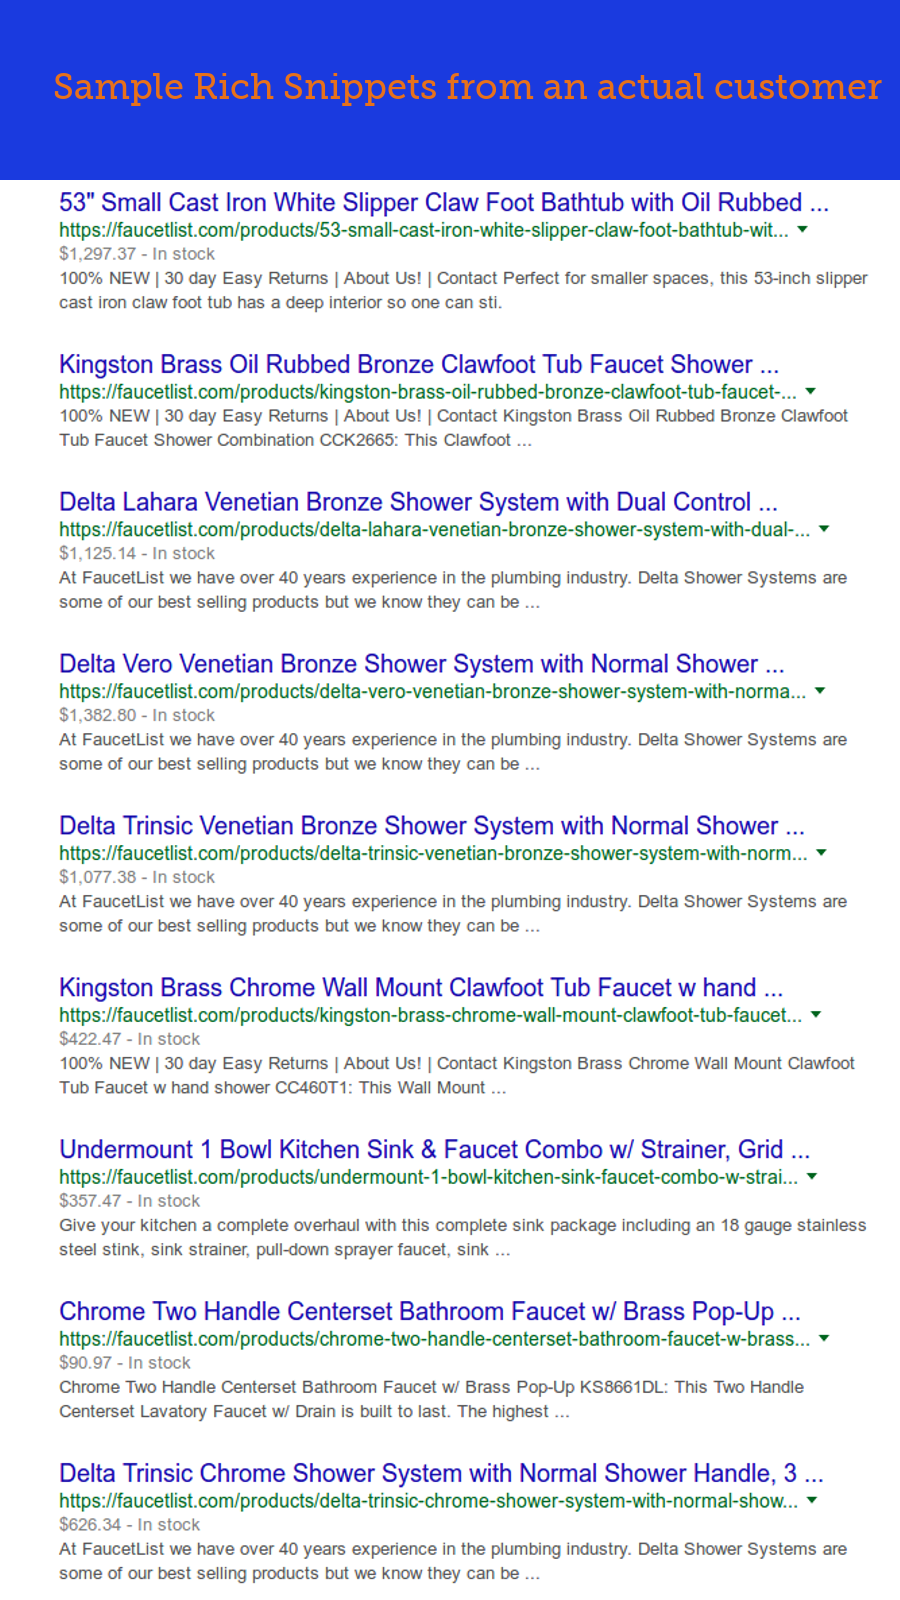 Example Rich Snippets for an actual customer, faucetlist.com